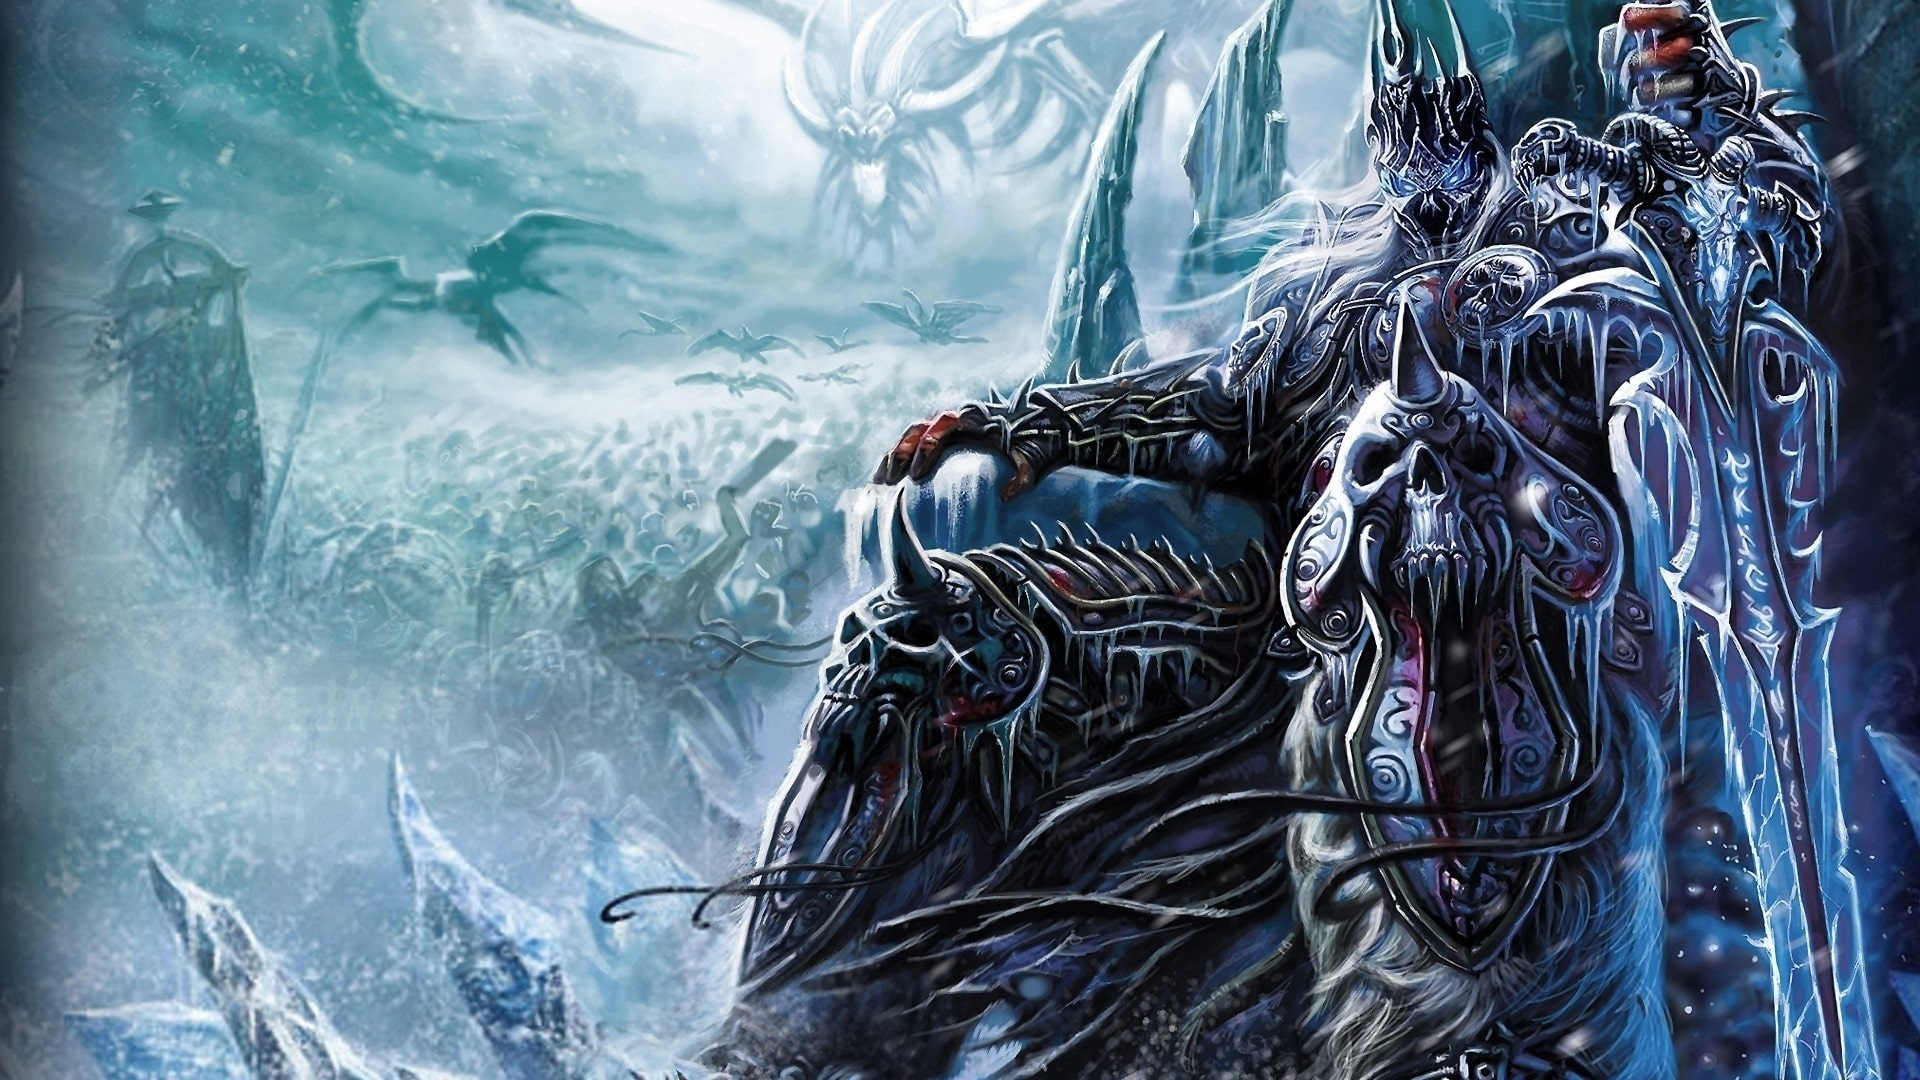 WOW: The Lich King HQ wallpapers